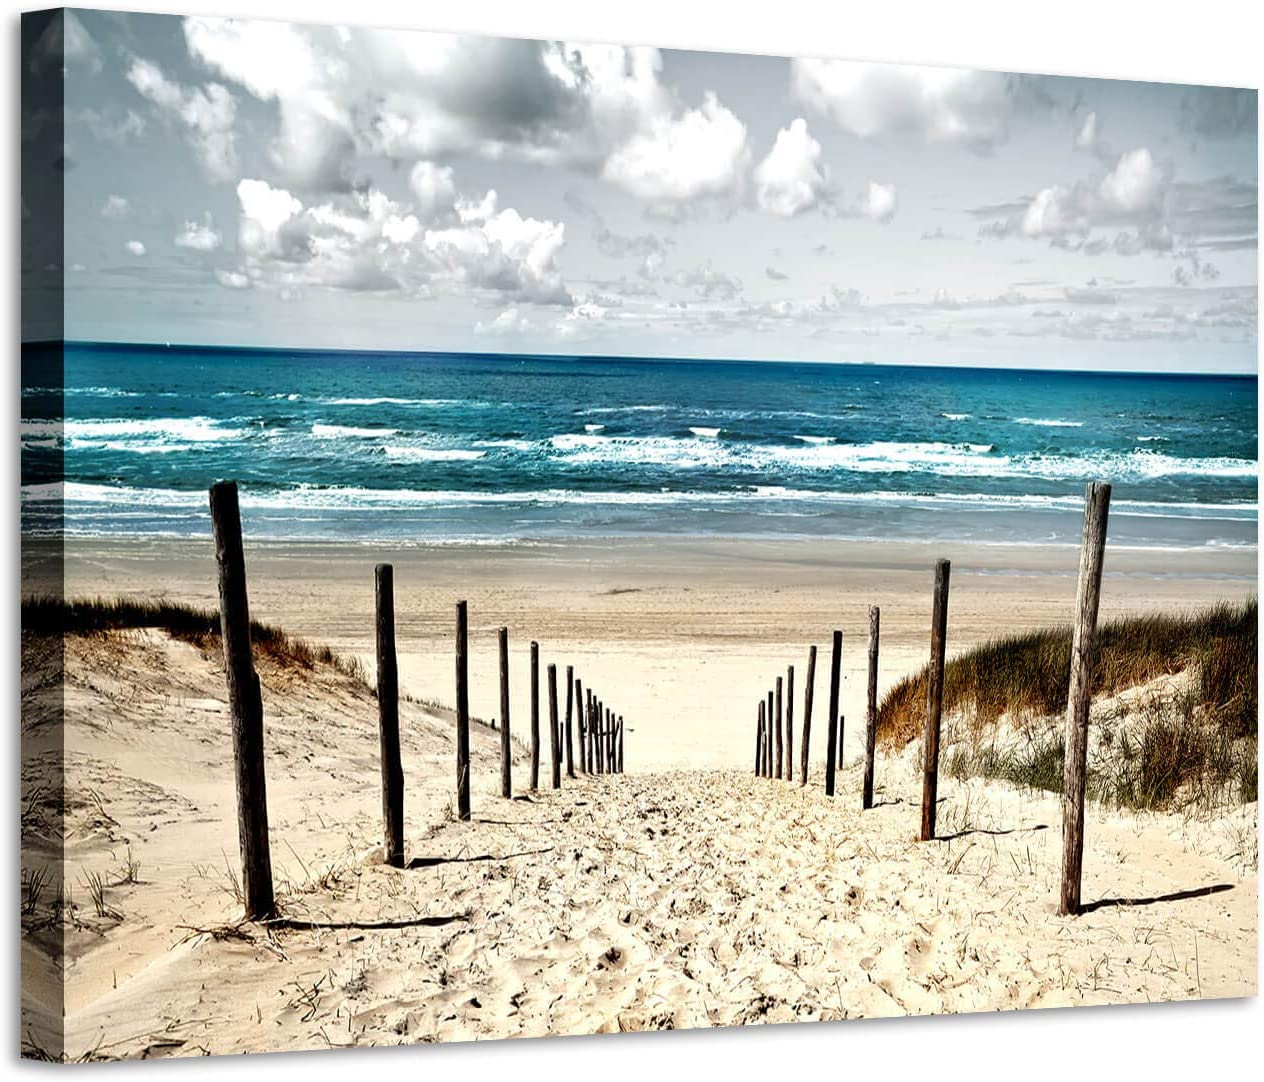 "Beach Artwork Coastal Wall Art: Seascape Picture Shoreline Path Painting on Canvas for Bathroom (36"" x 24"" x 1 Panel)"